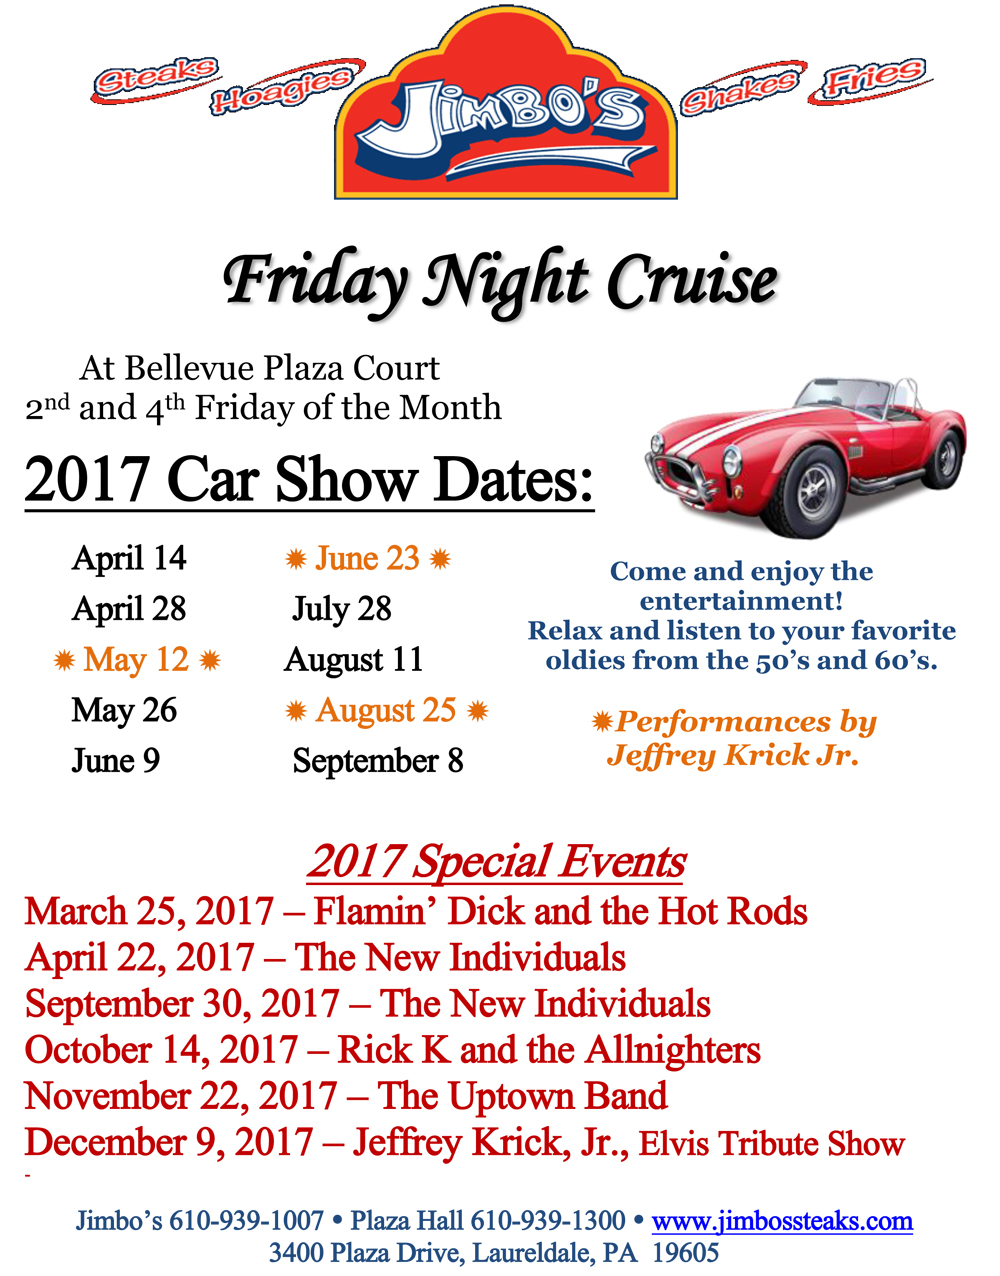 2017 Cruise Nights at Jimbos_1000